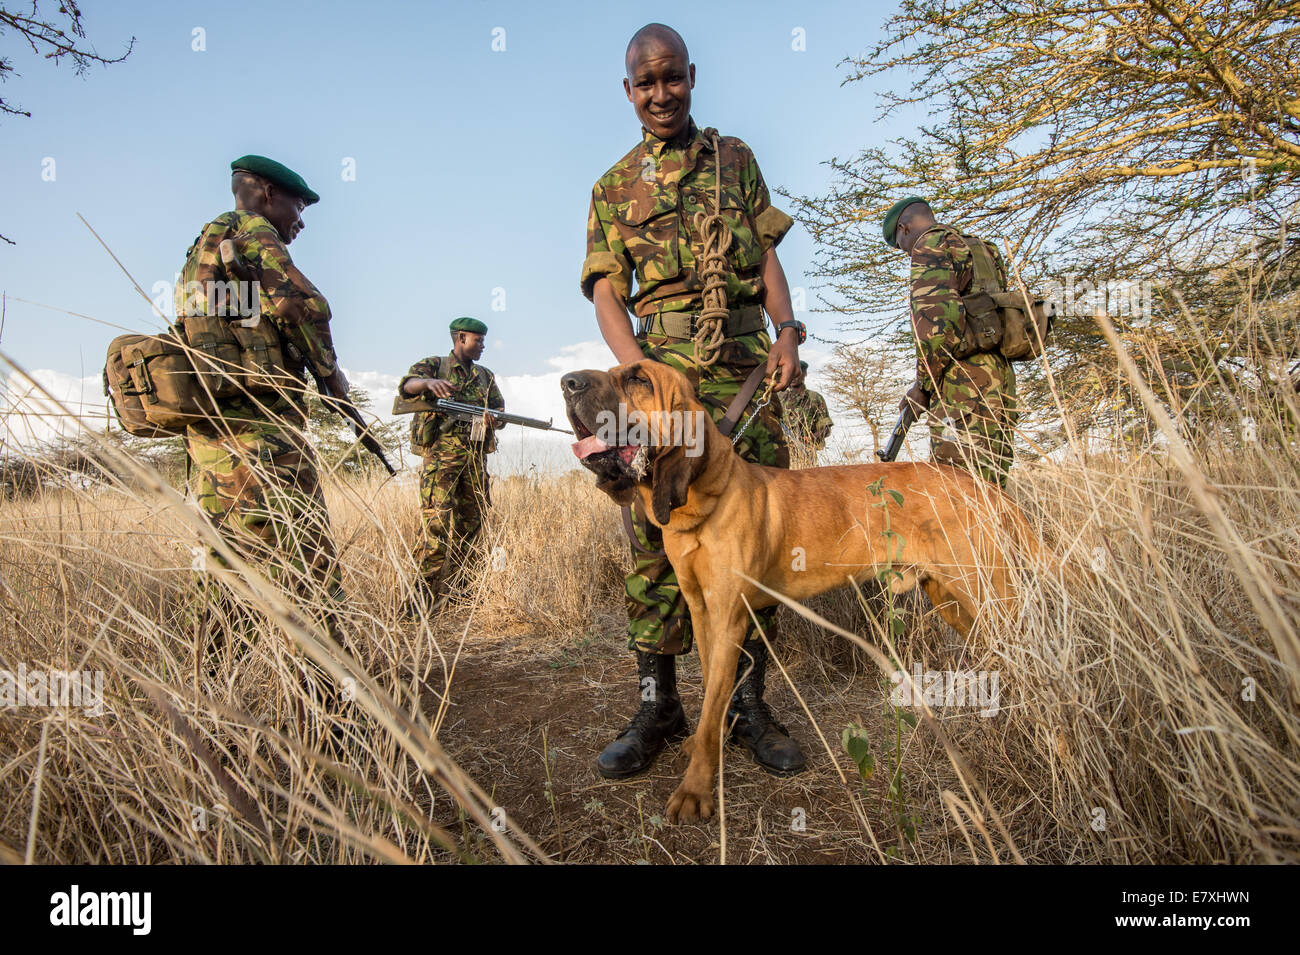 Gilia Eshian handles a bloodhound used for anti poaching trips a the Lewa Wildlife Conservancy in Northern Kenya. - Stock Image